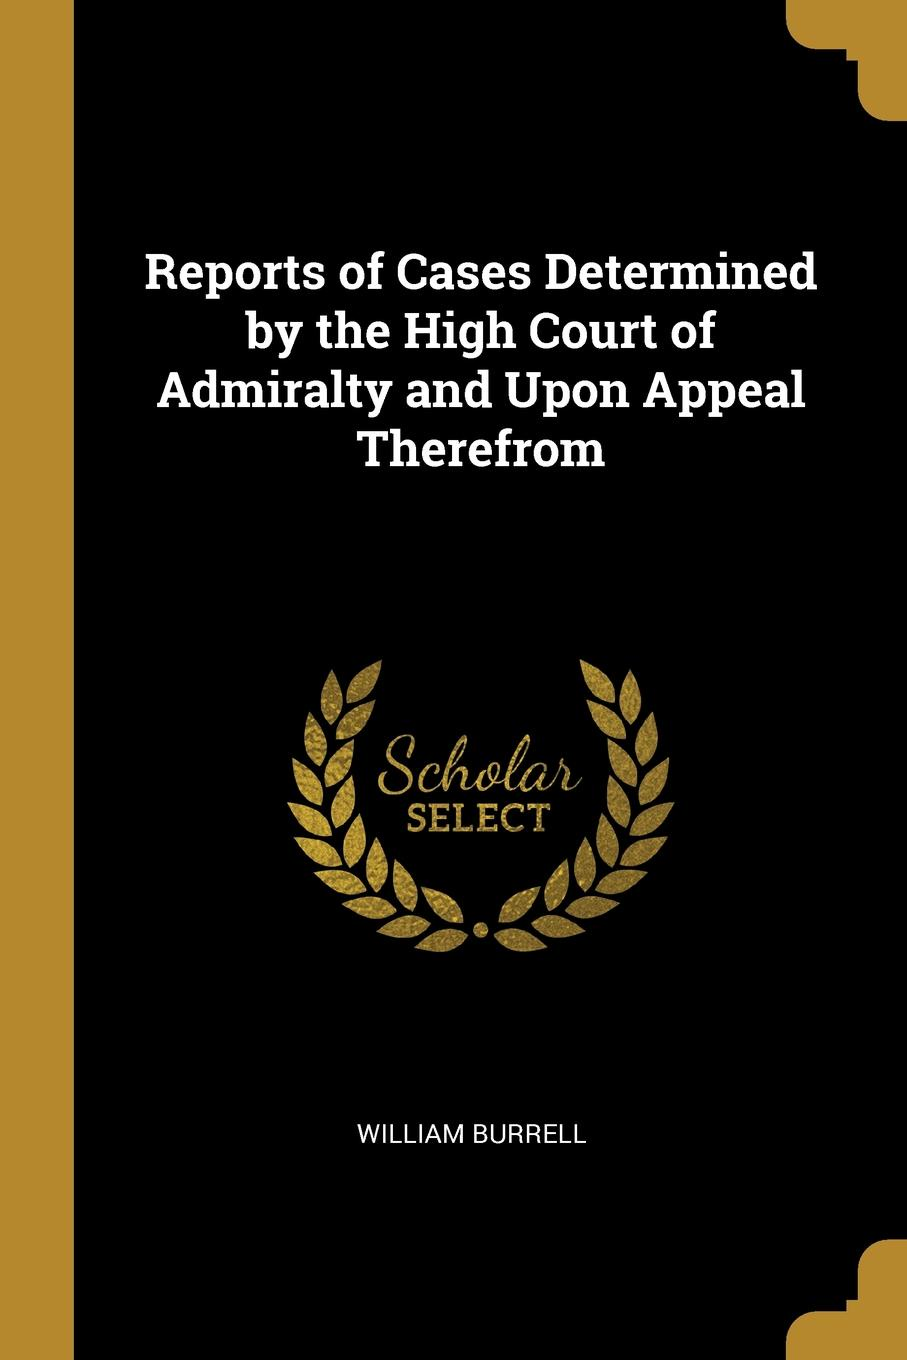 William Burrell Reports of Cases Determined by the High Court of Admiralty and Upon Appeal Therefrom